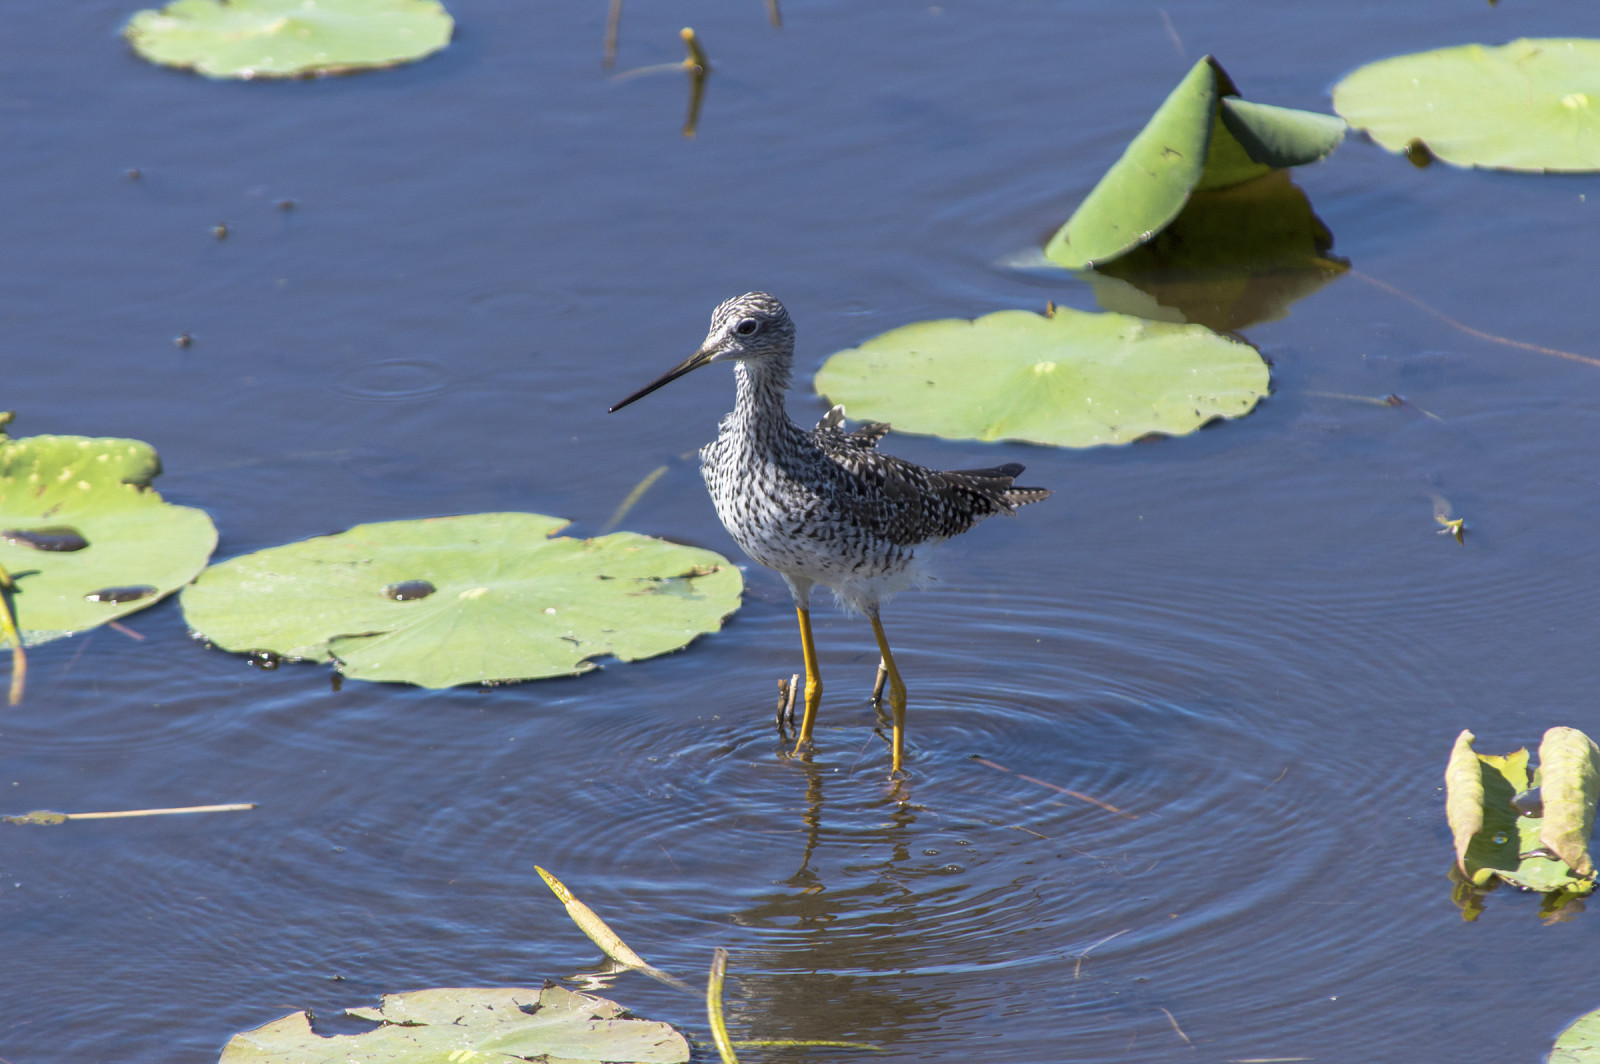 Lesser yellowlegs (Tringa melanoleuca) at Aransas National Wildlife Refuge, Texas. (Simon Tye)